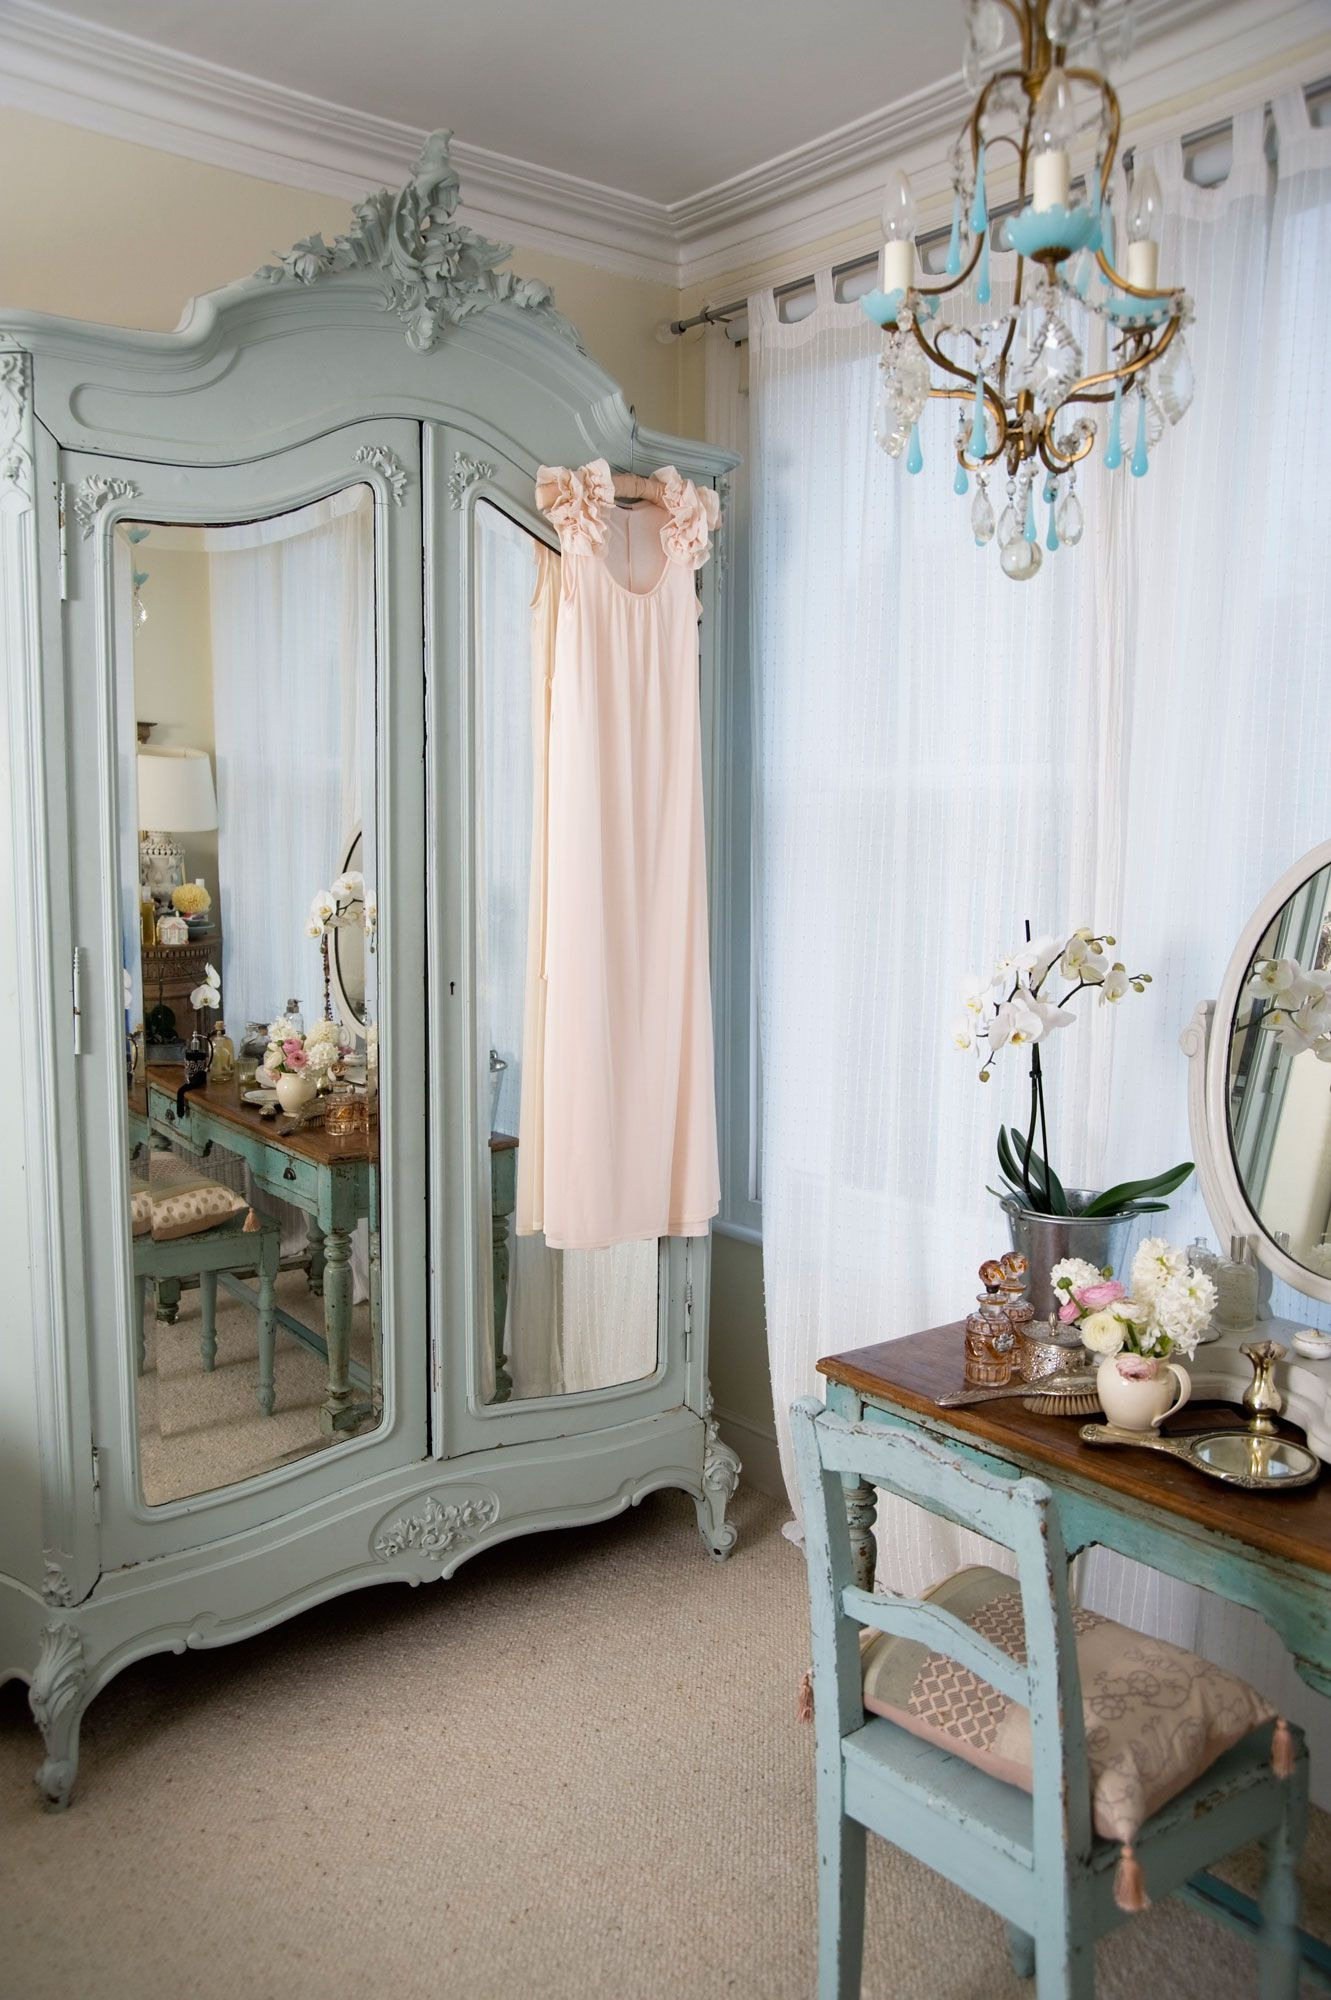 Estilo shabby chic en decoraci n hogarmania - Decoracion estilo romantico ...